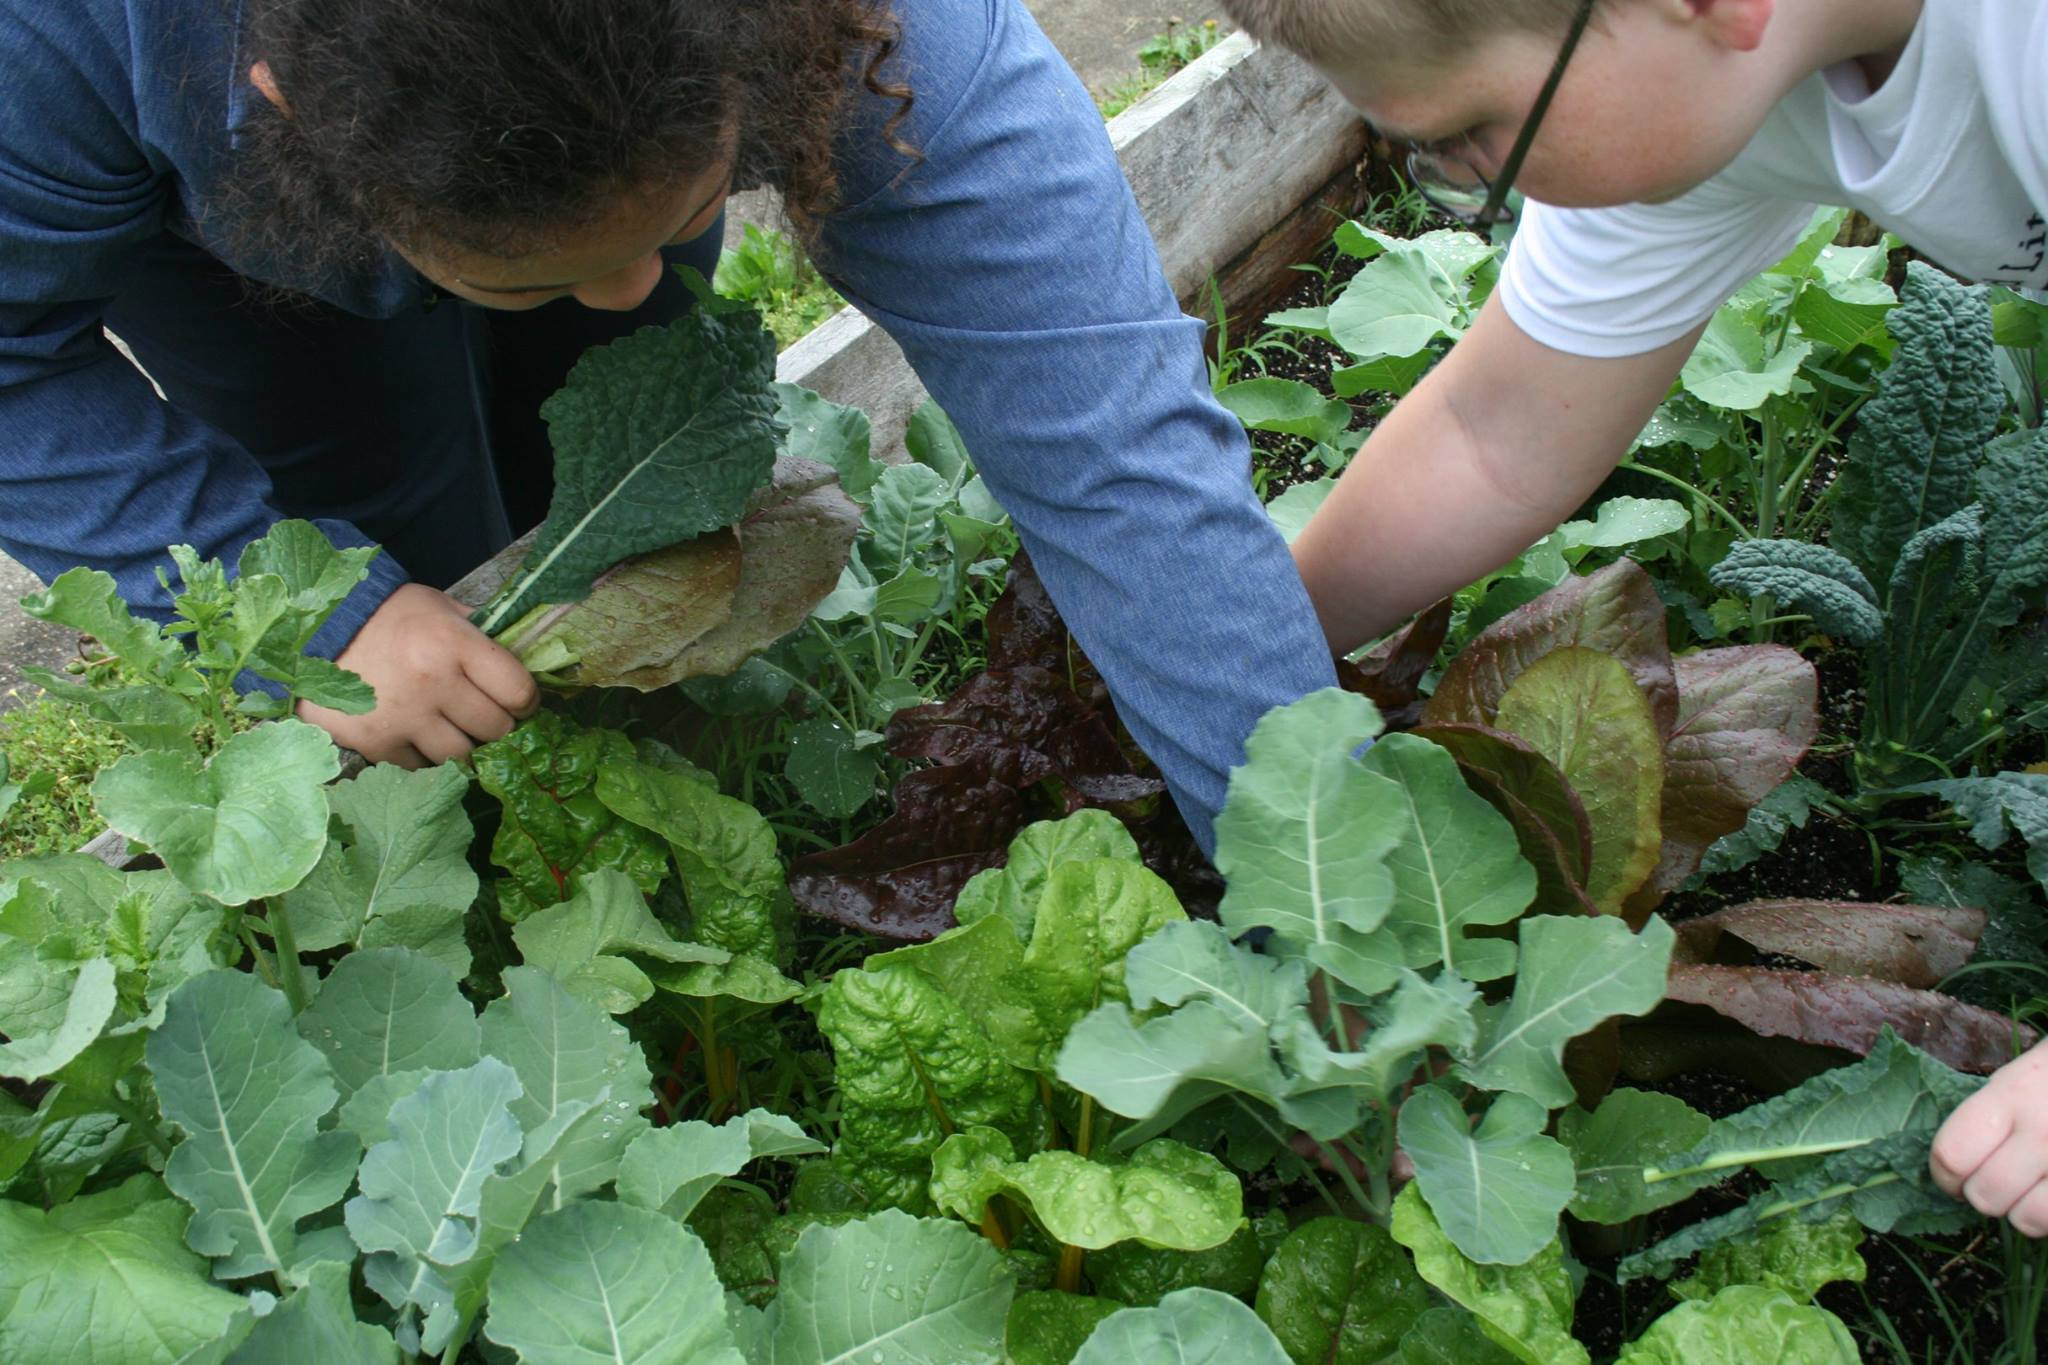 Kids harvesting in school garden.